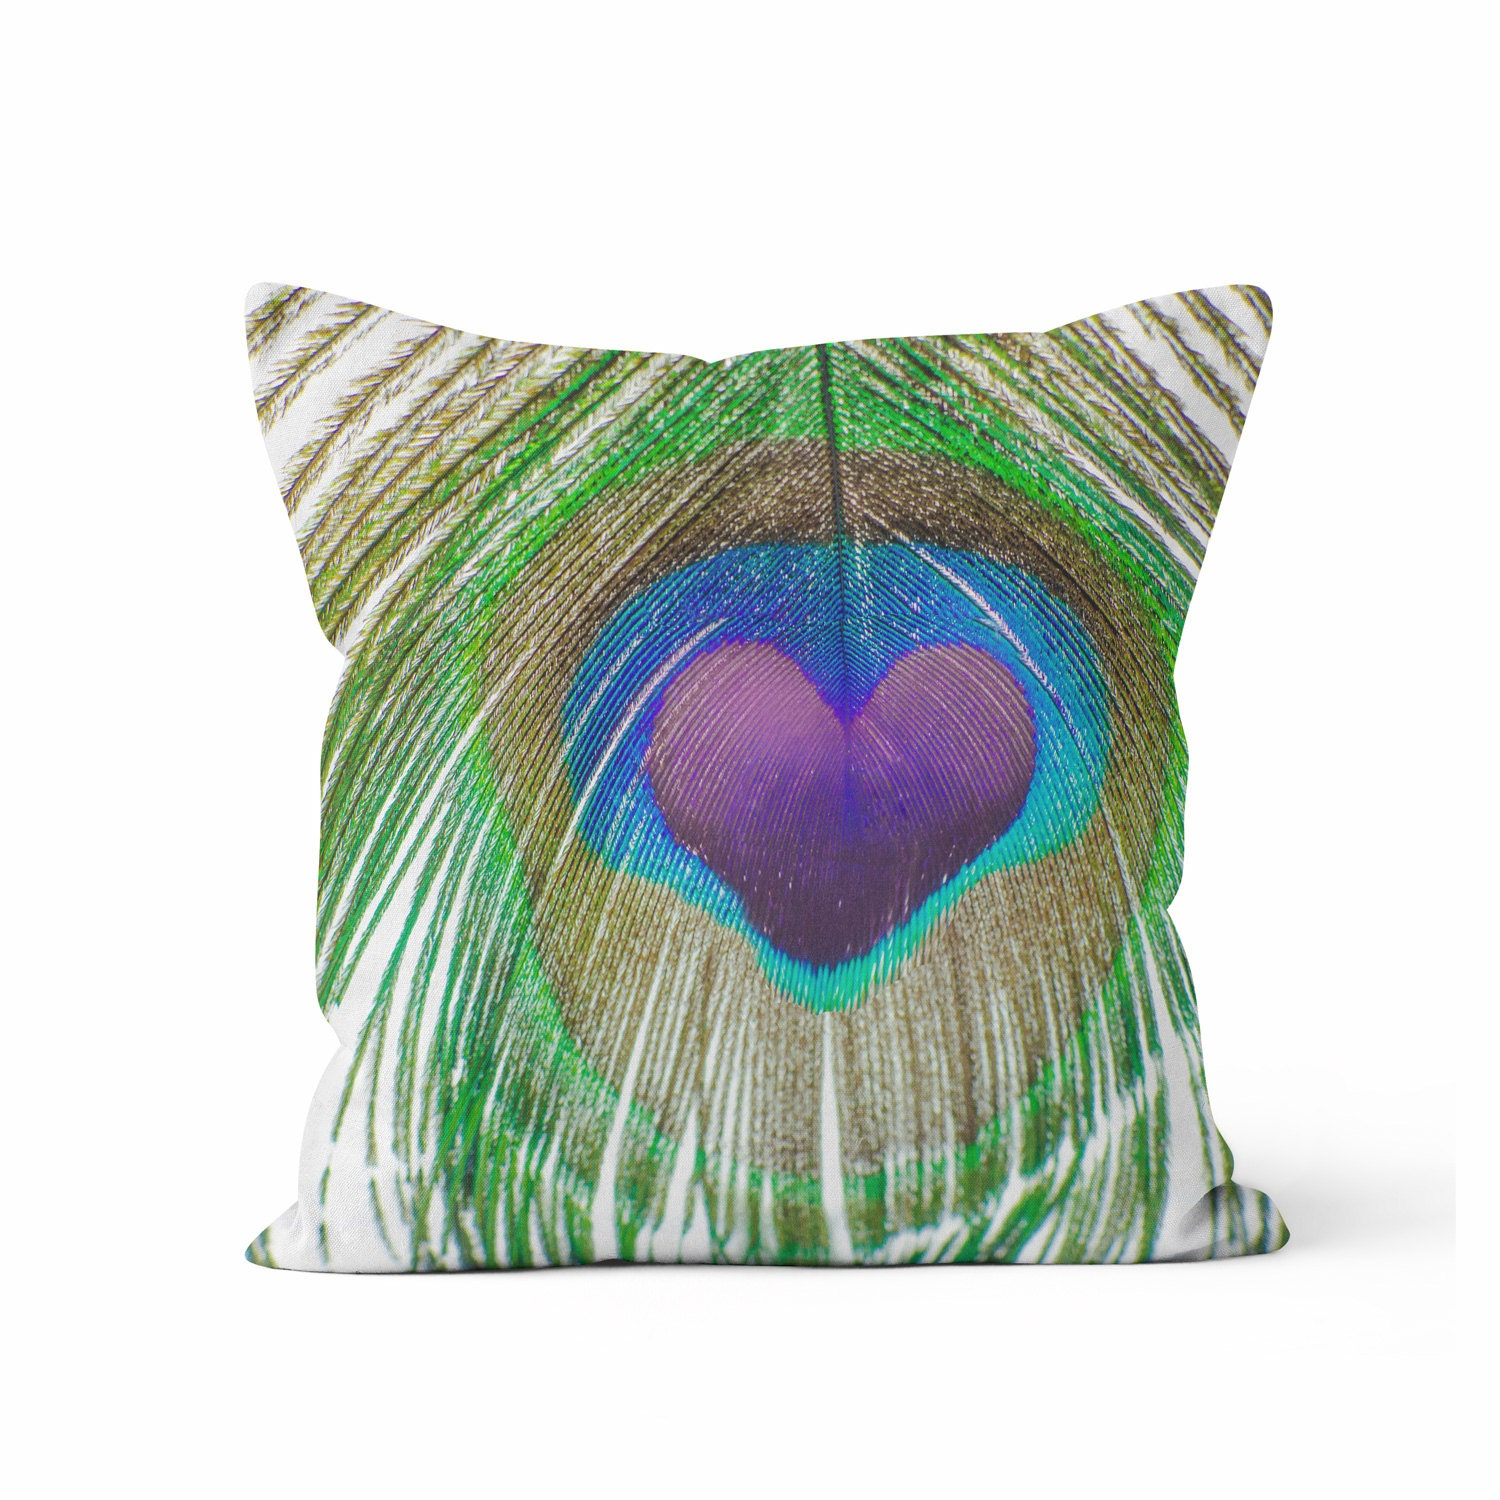 Throw Pillow Peacock : PEACOCK FEATHER LOVE Throw Pillow Case Peacock Home Decor